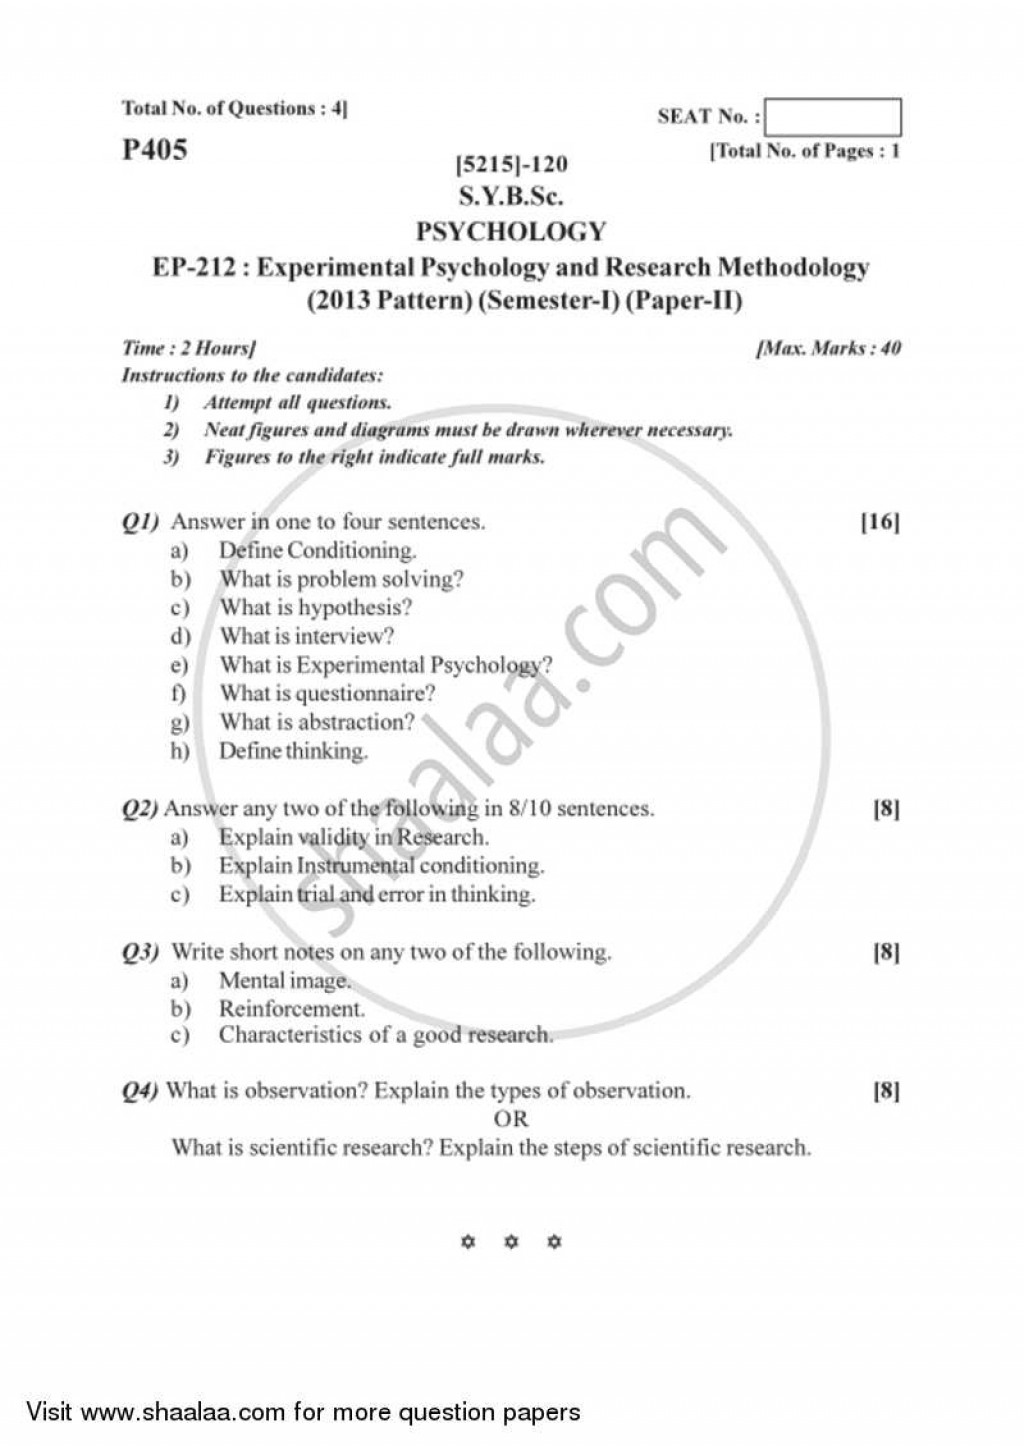 001 University Of Pune Bachelor Bsc Experimental Psychology Research Methodology Semester Sybsc Pattern 20a139127c9aa4d488dbfc2180e67df98s Unforgettable Papers 2017 Large